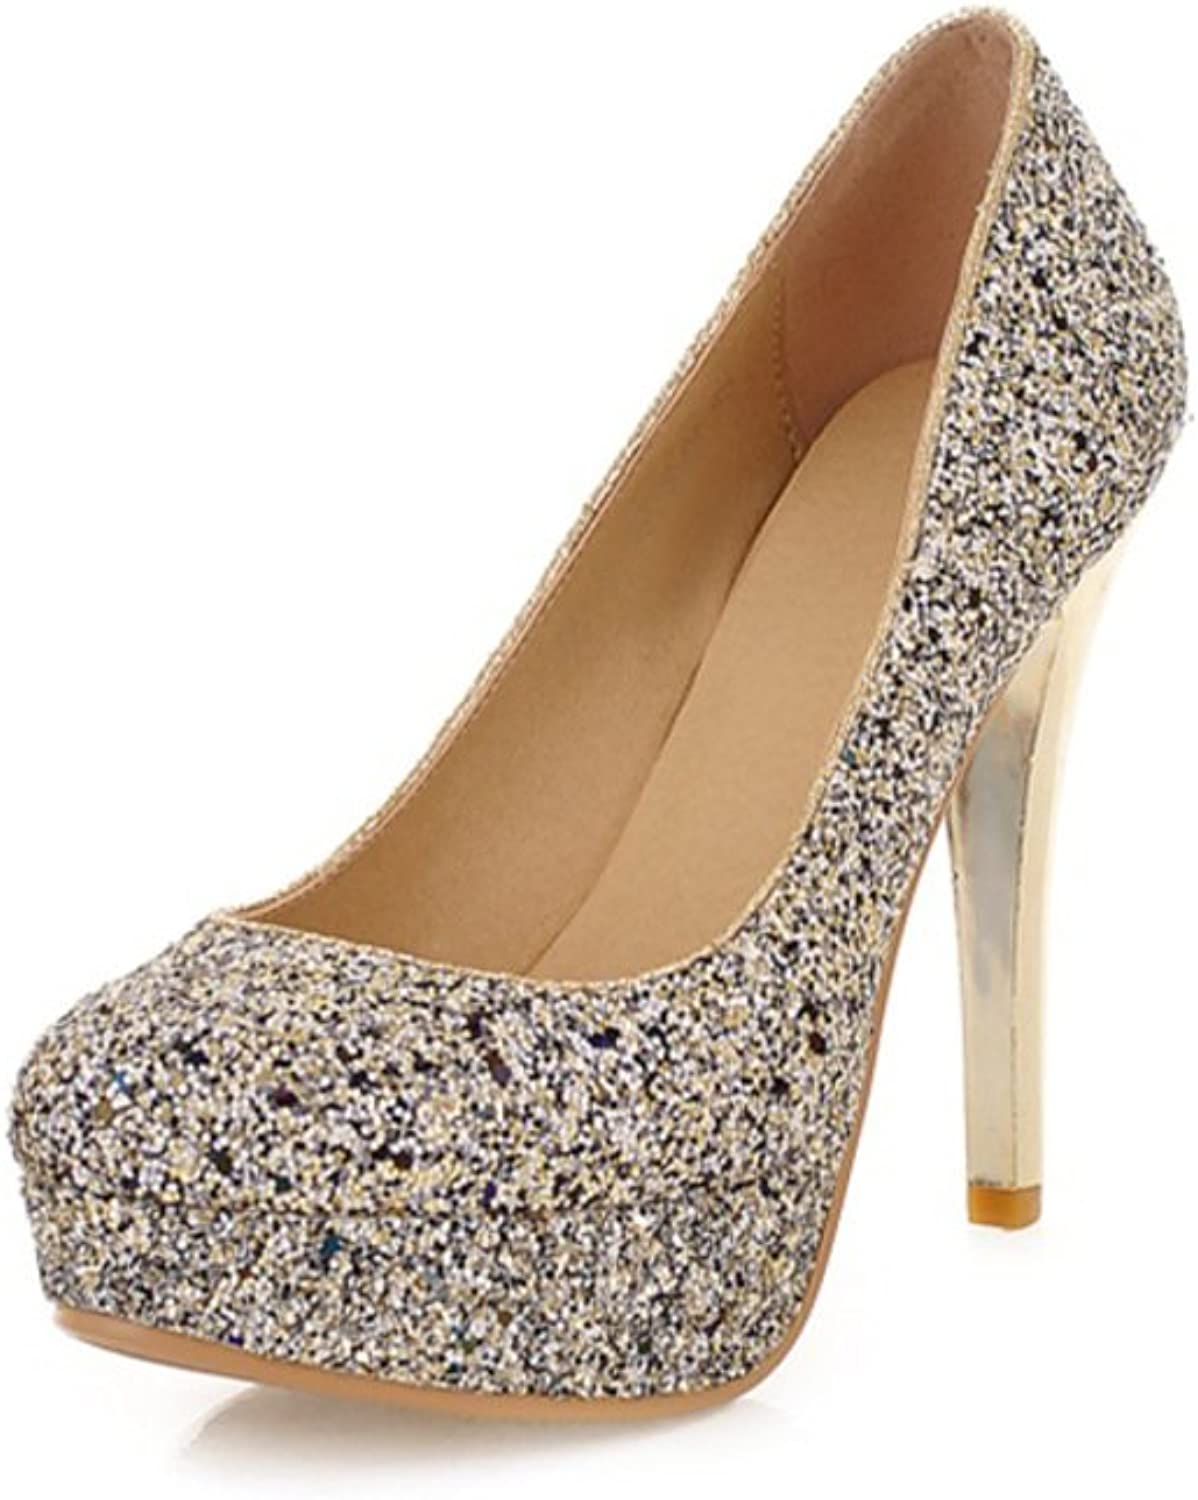 RHFDVGDS fashion shoes Ladies shoes sexy Super sequin heels night club Waterproof light shoes